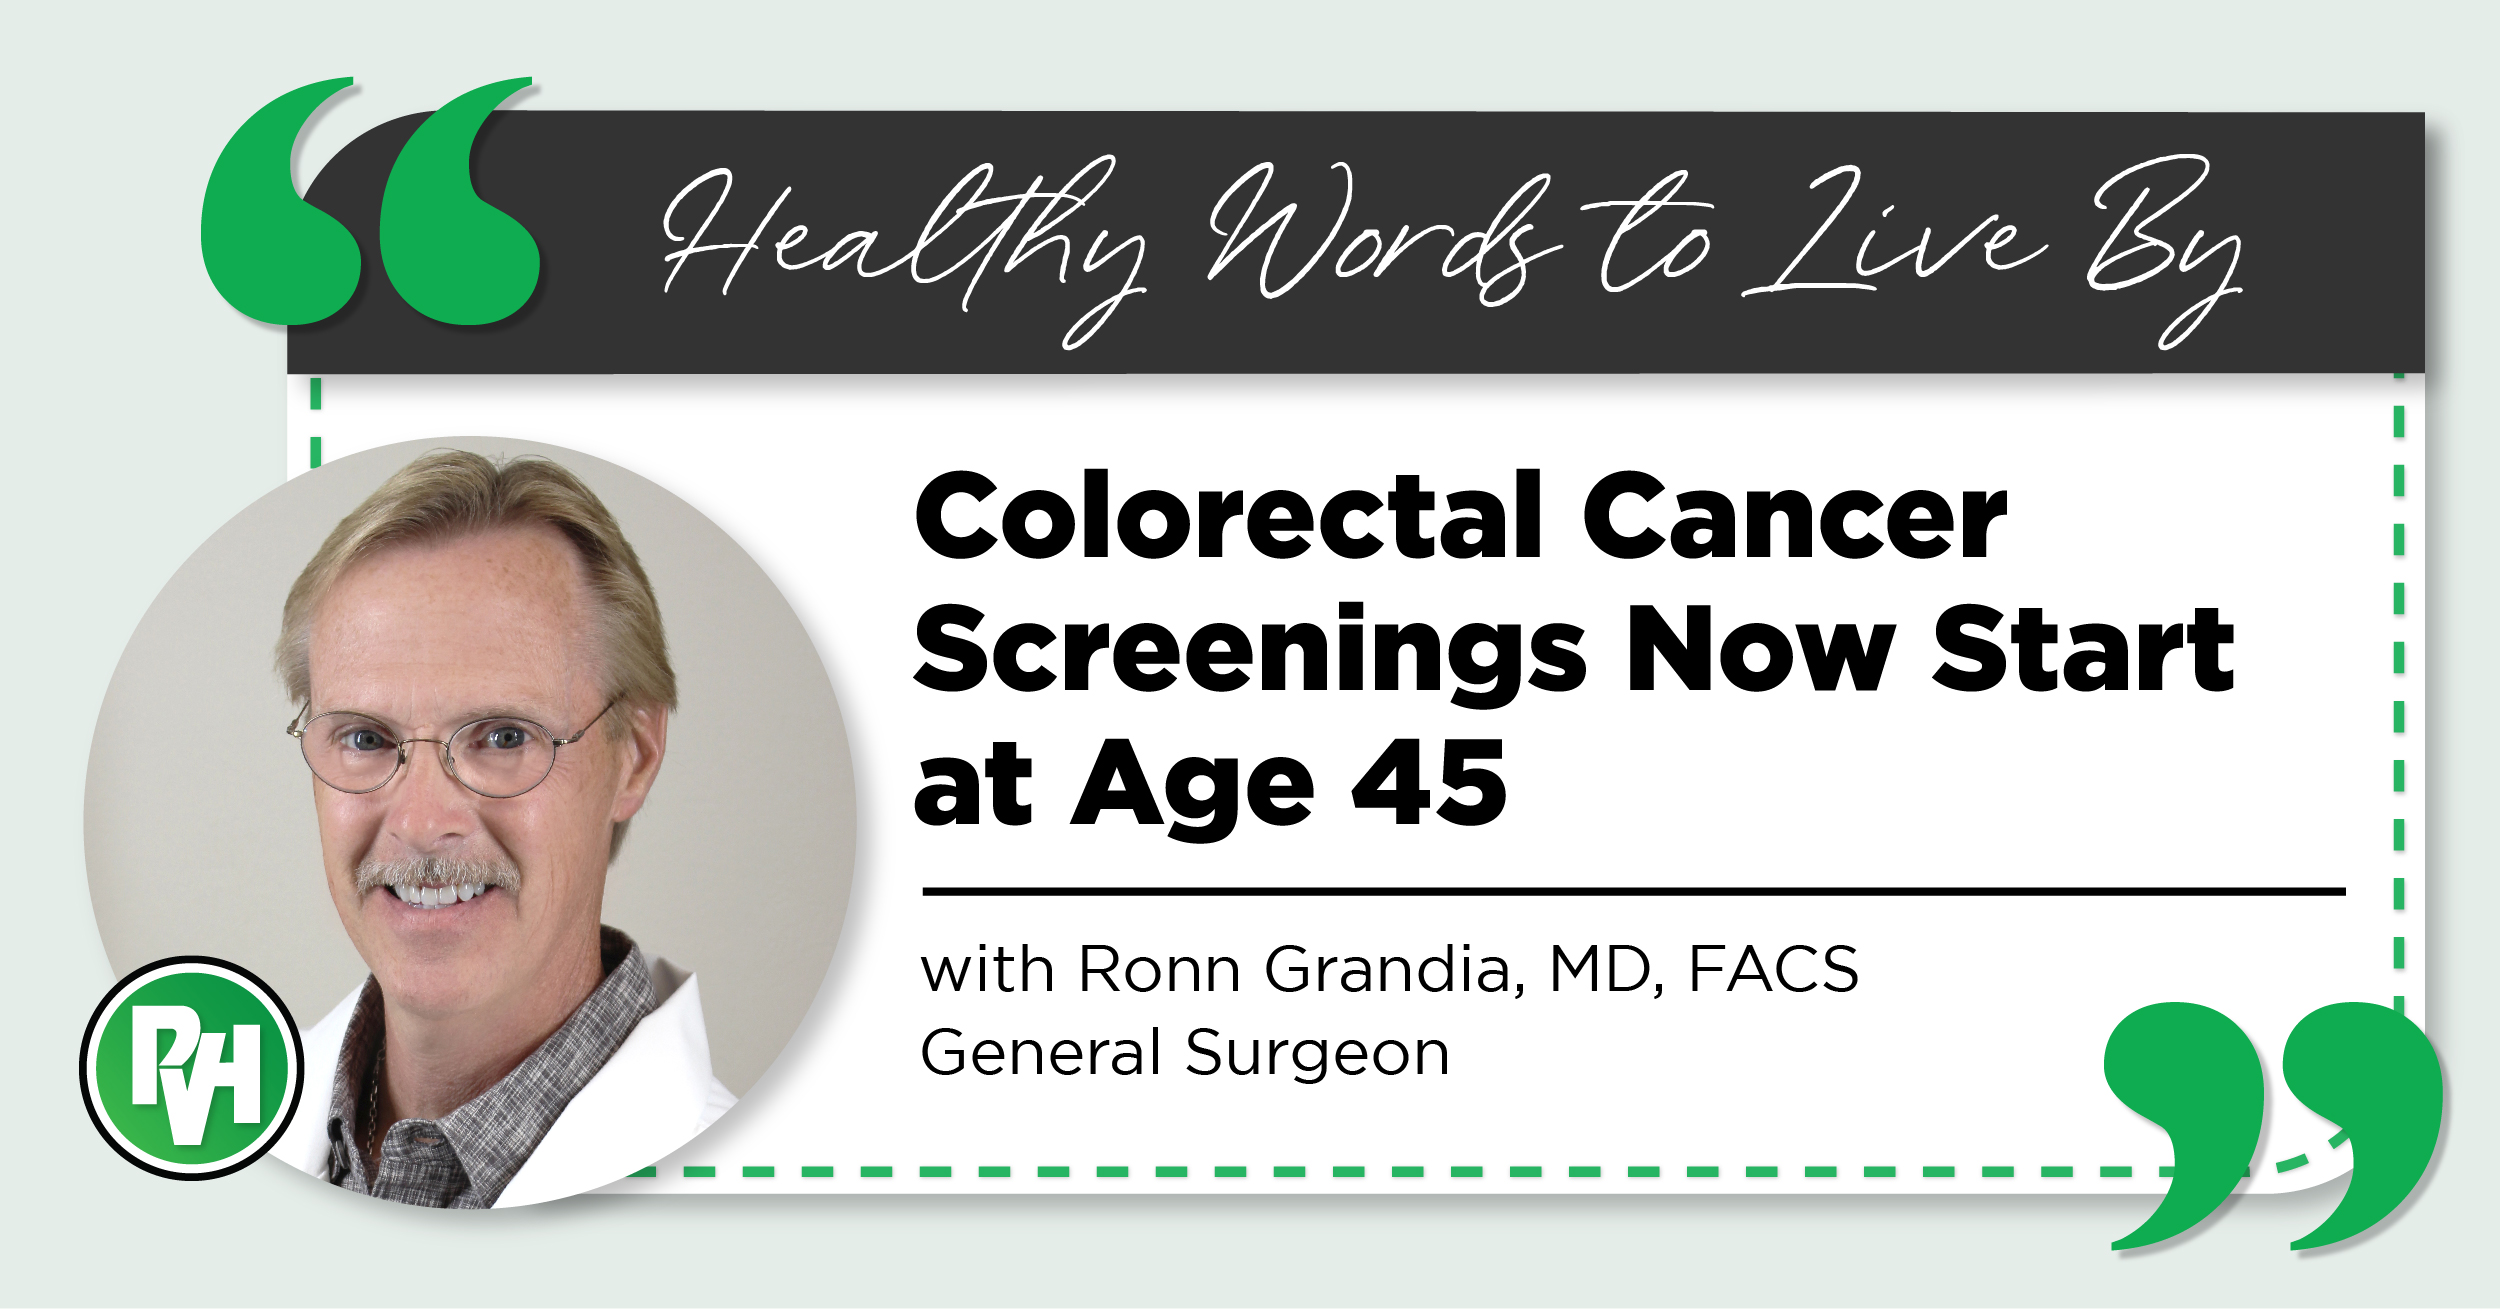 Healthy Words to Live By | Colorectal Cancer Screenings Now Start at Age 45 | with Ronn Grandia, MD, FACS